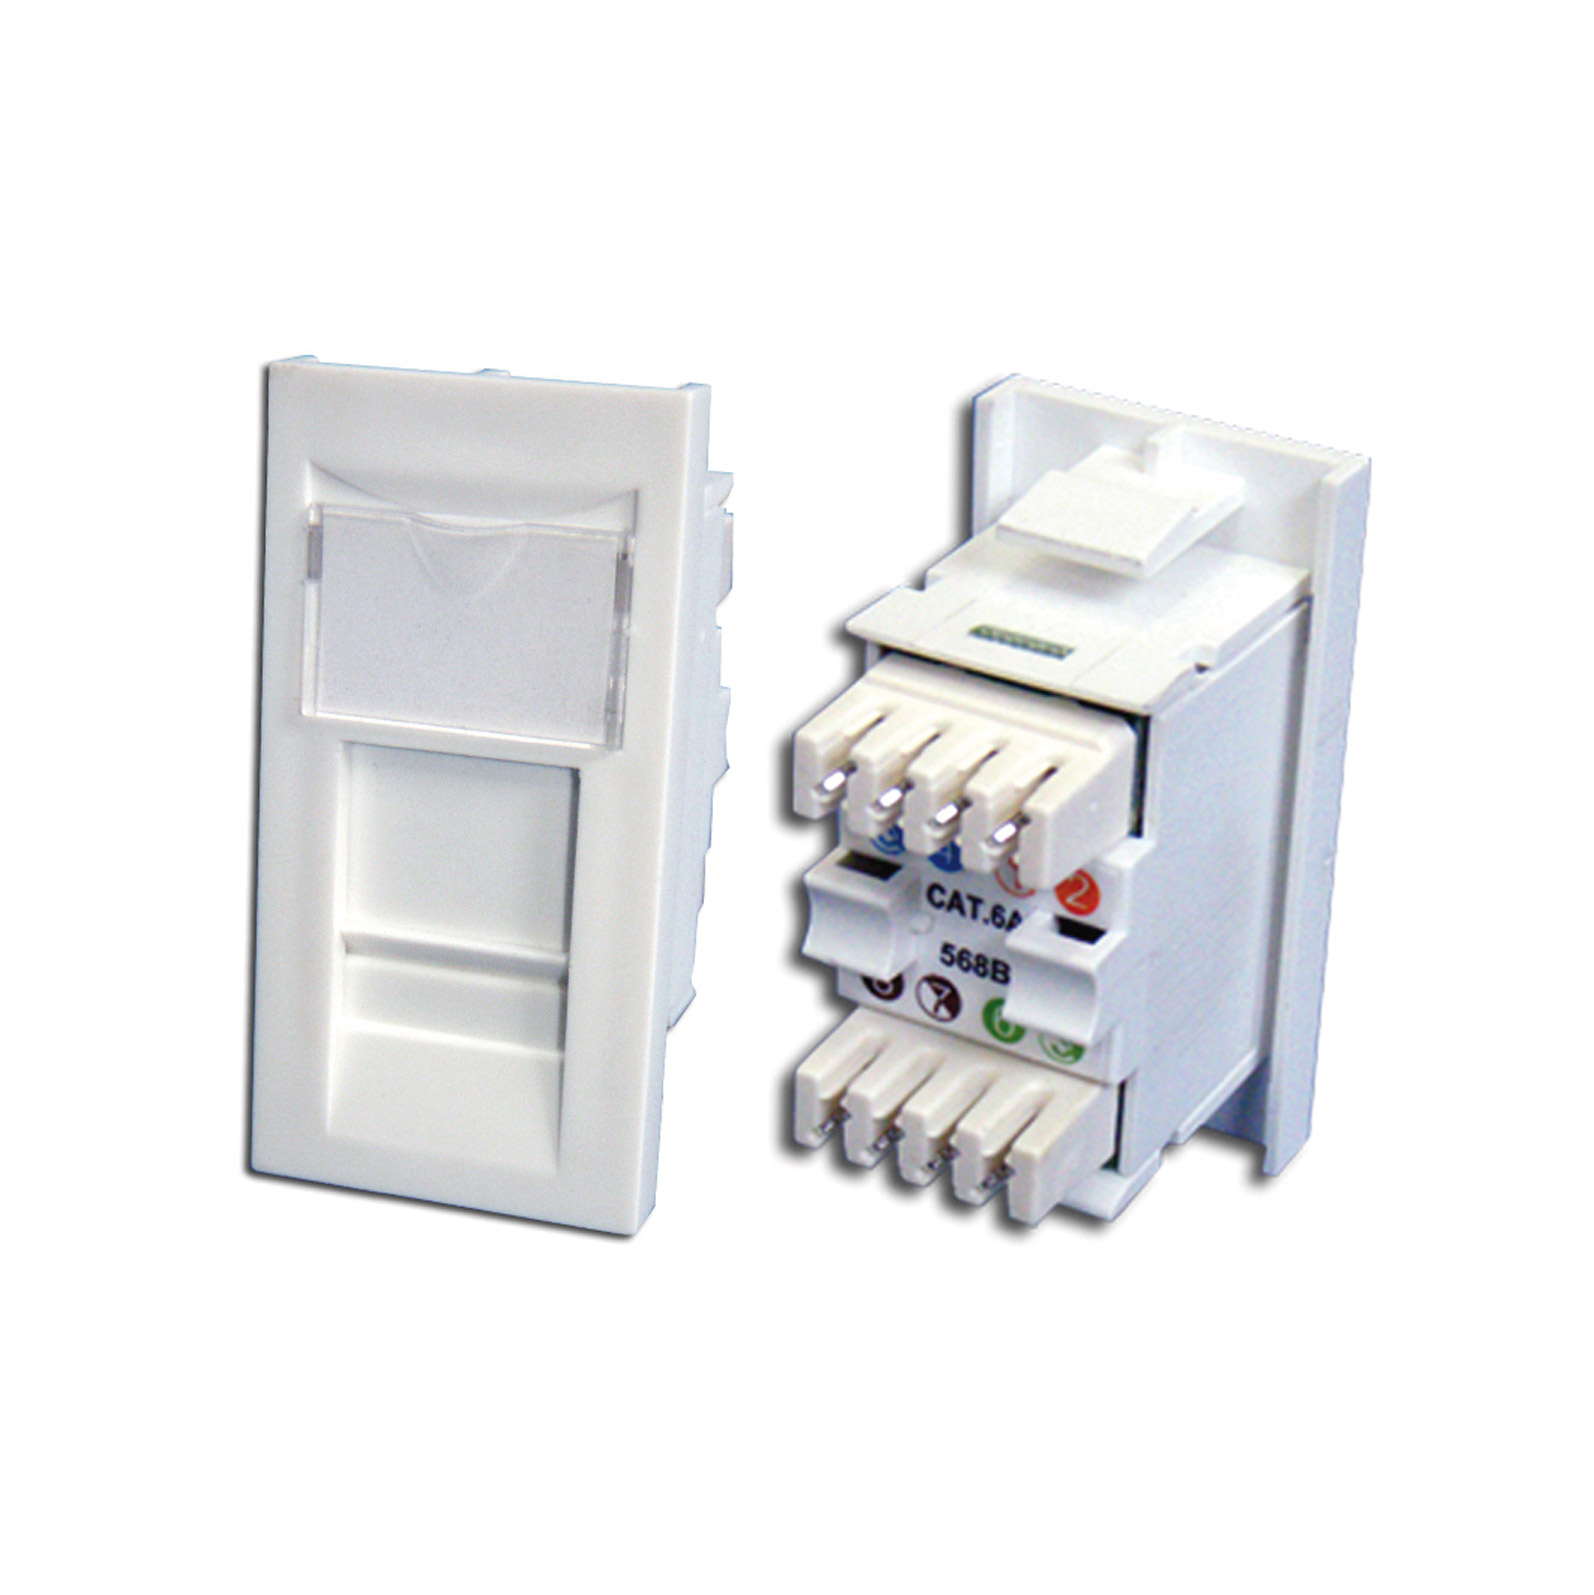 Cat 6 UTP Module Plus showing front and rear